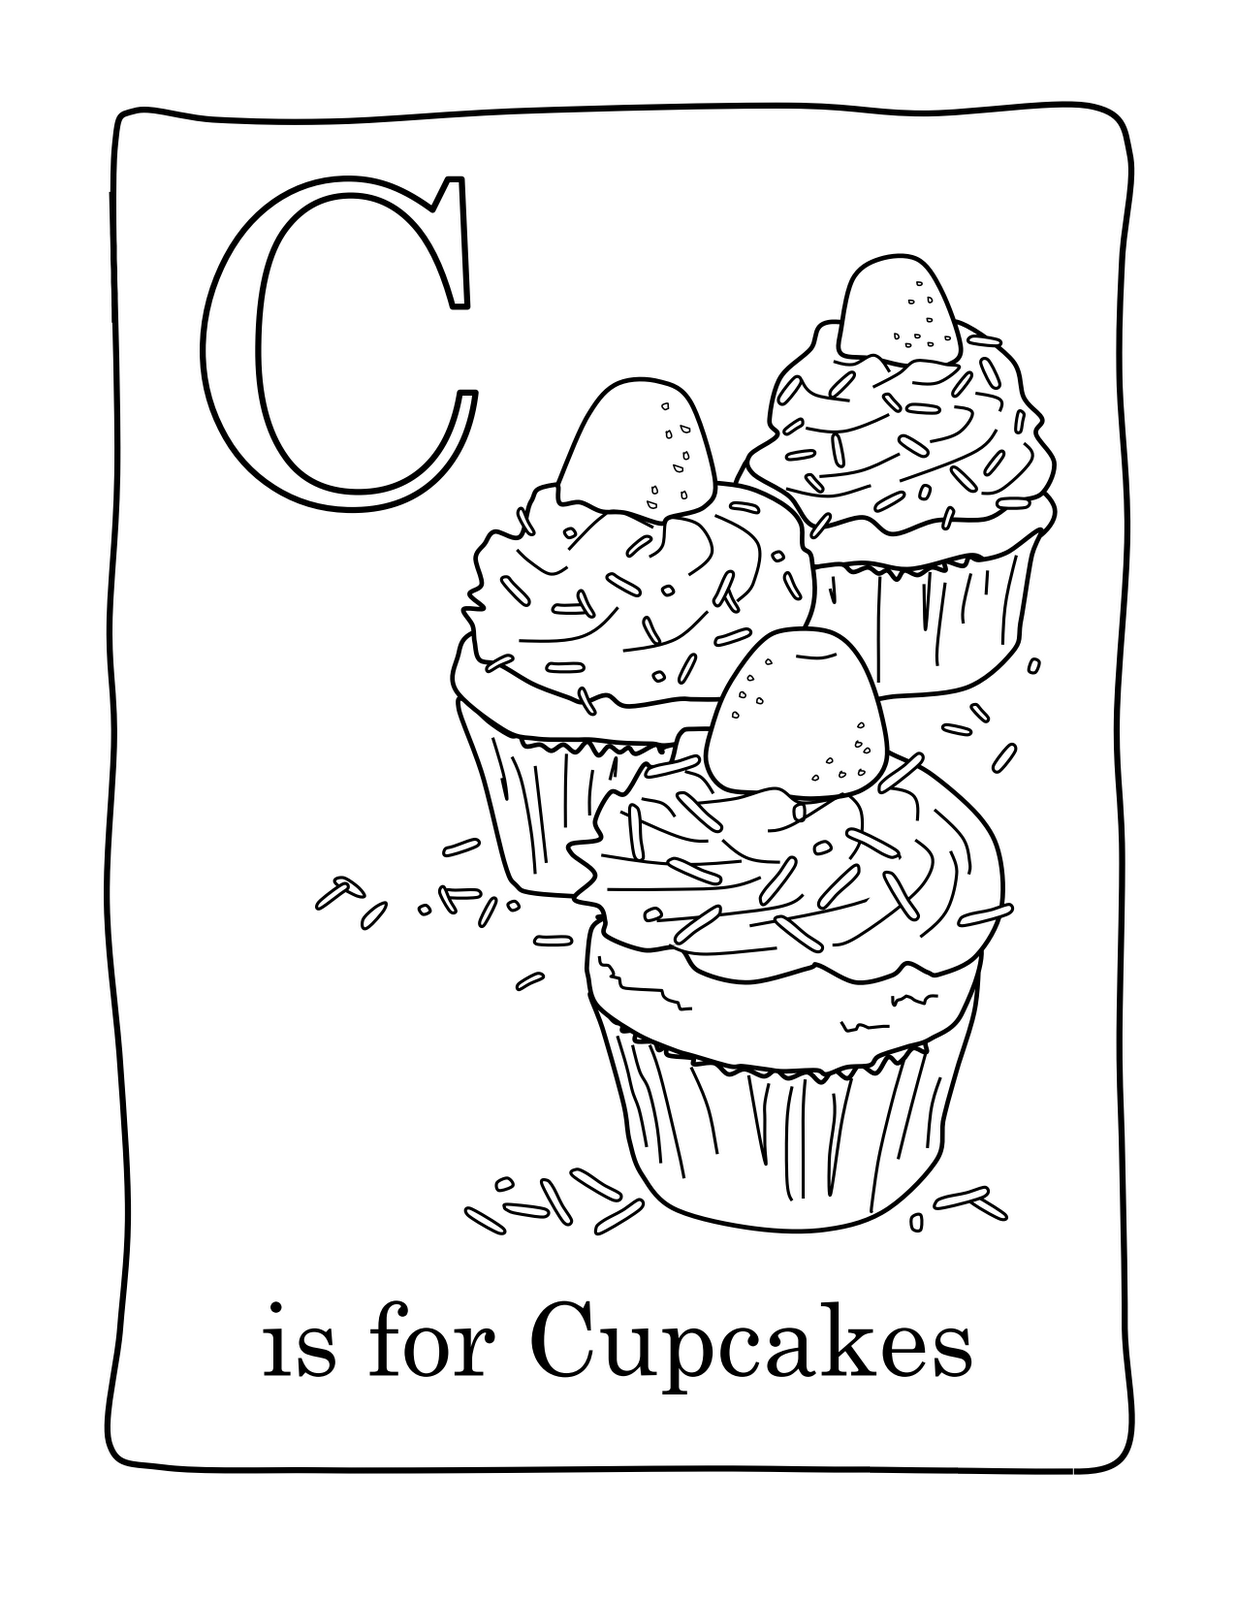 cupcake coloring pages printable - Cupcakes Coloring Pages Printable